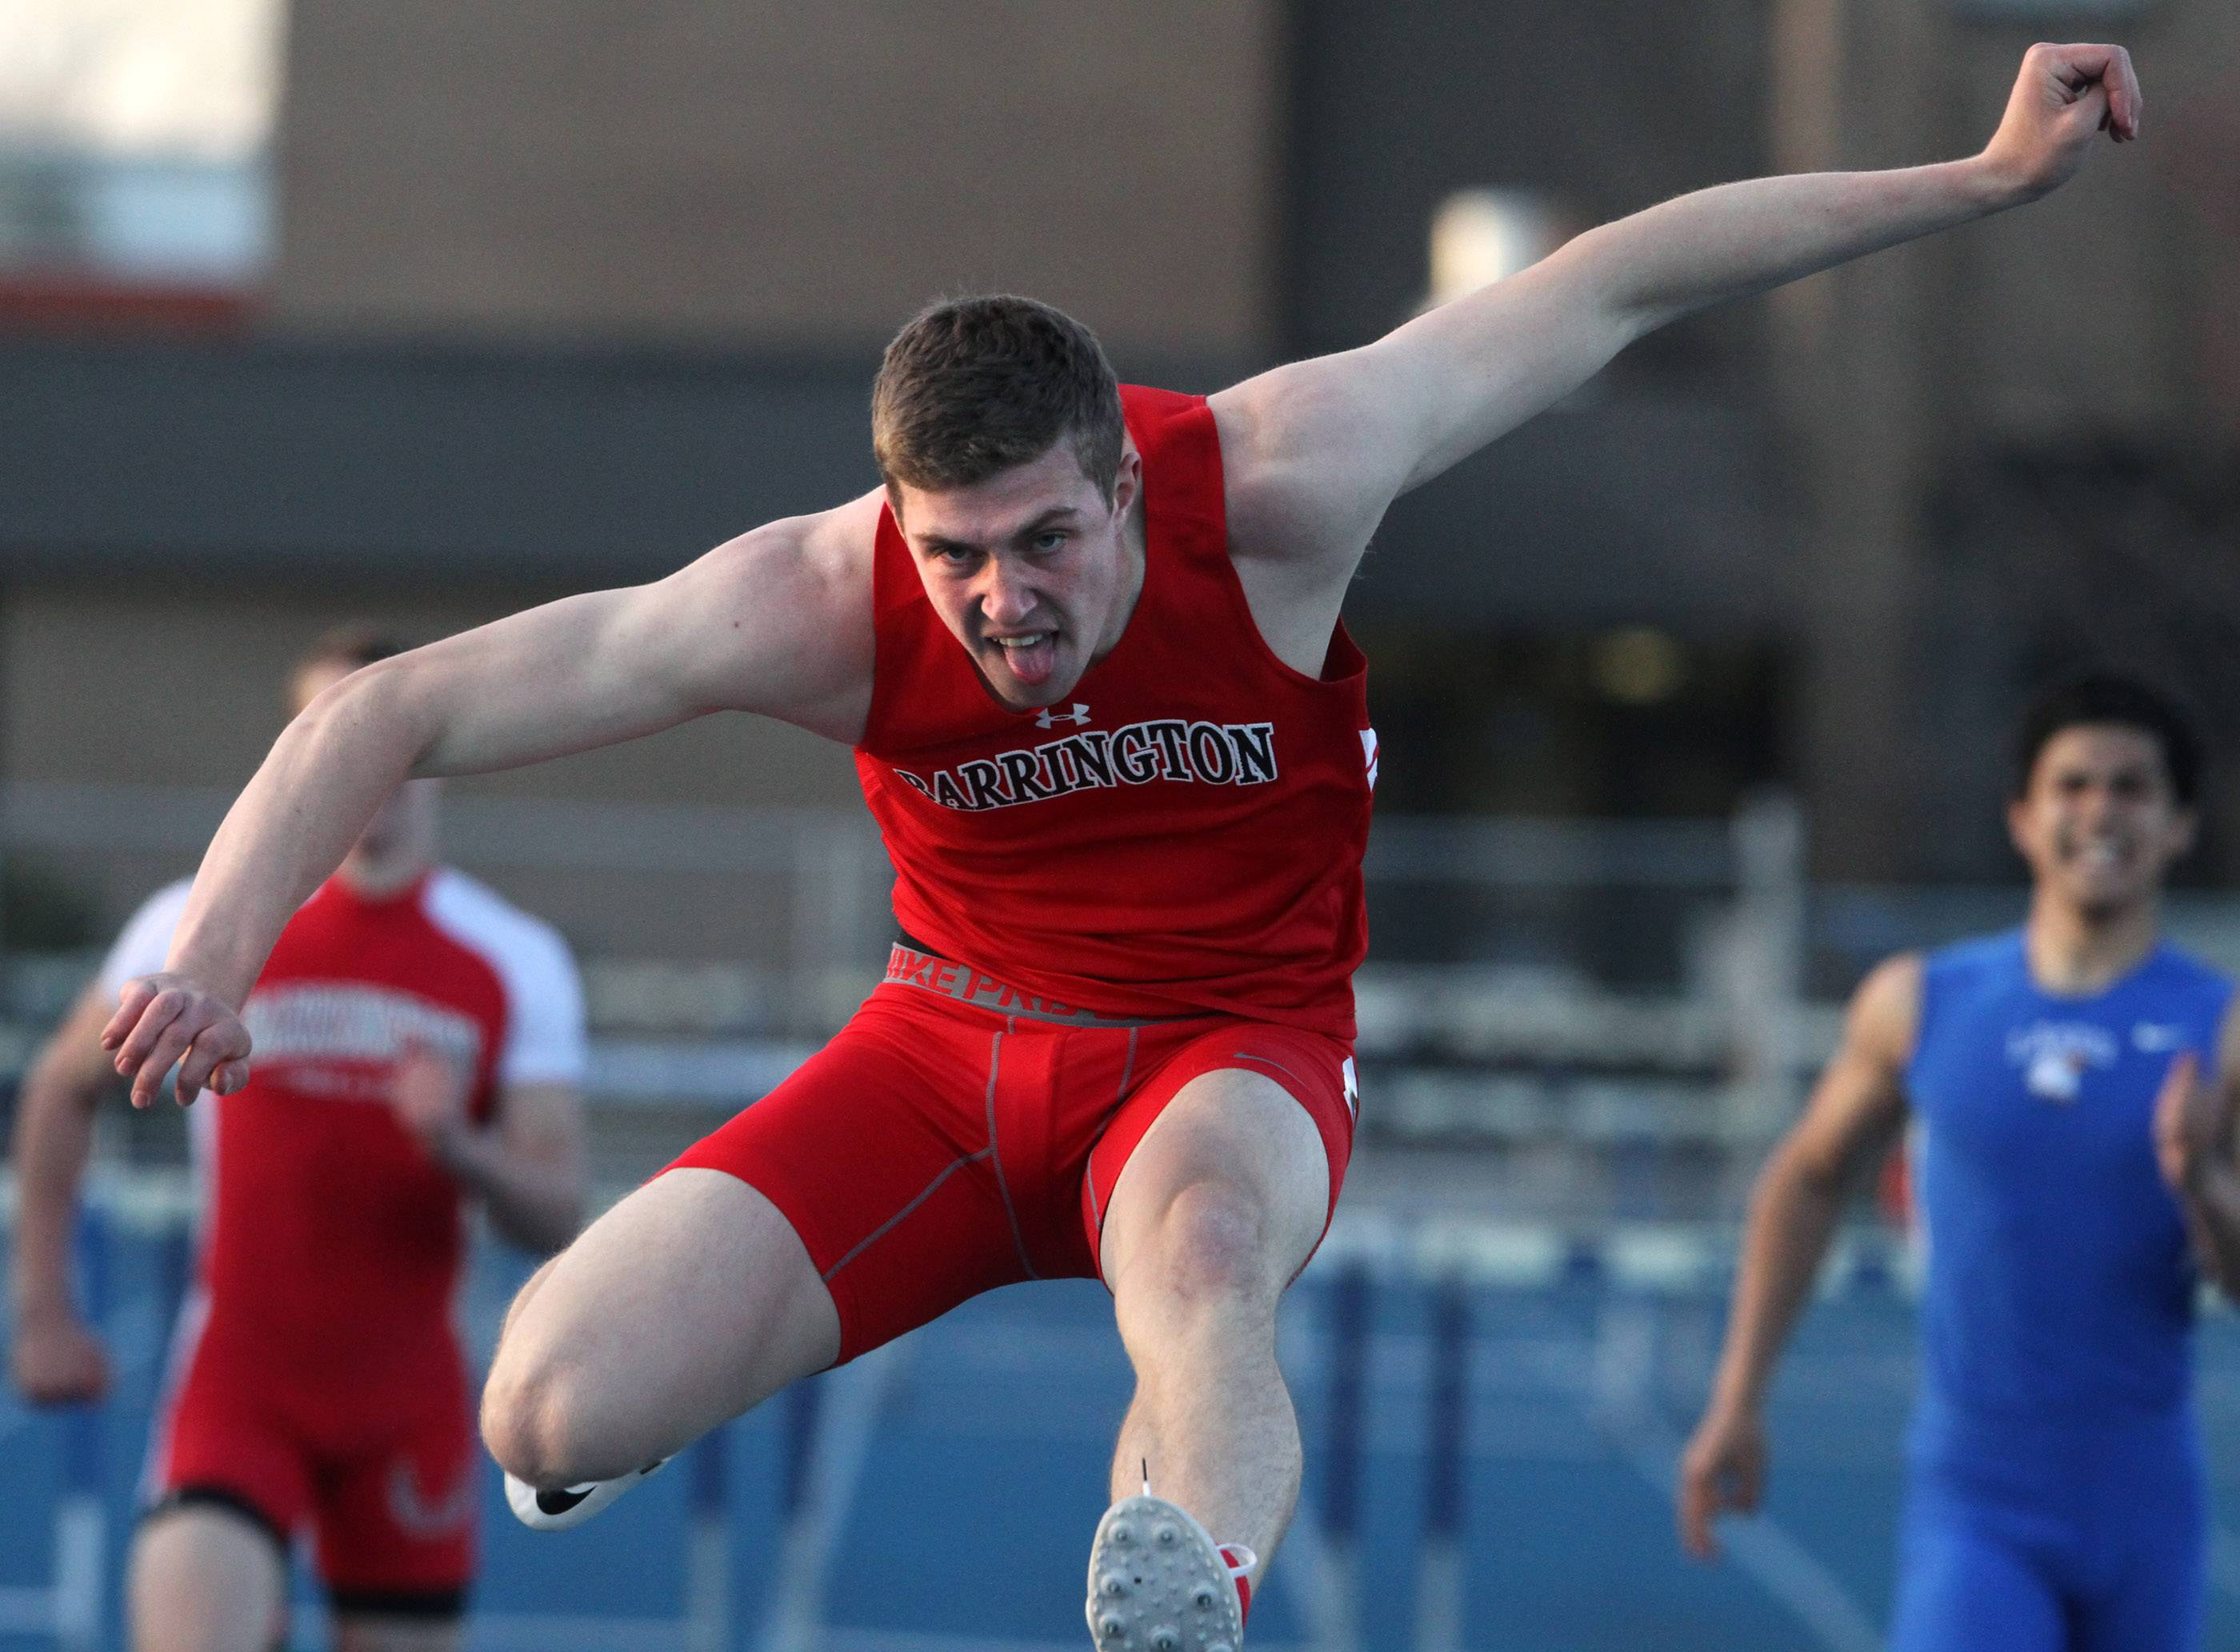 Barrington's Parker Deloye finishing first in the 300-meter hurdles at the Lake Zurich boys track invite on Friday.